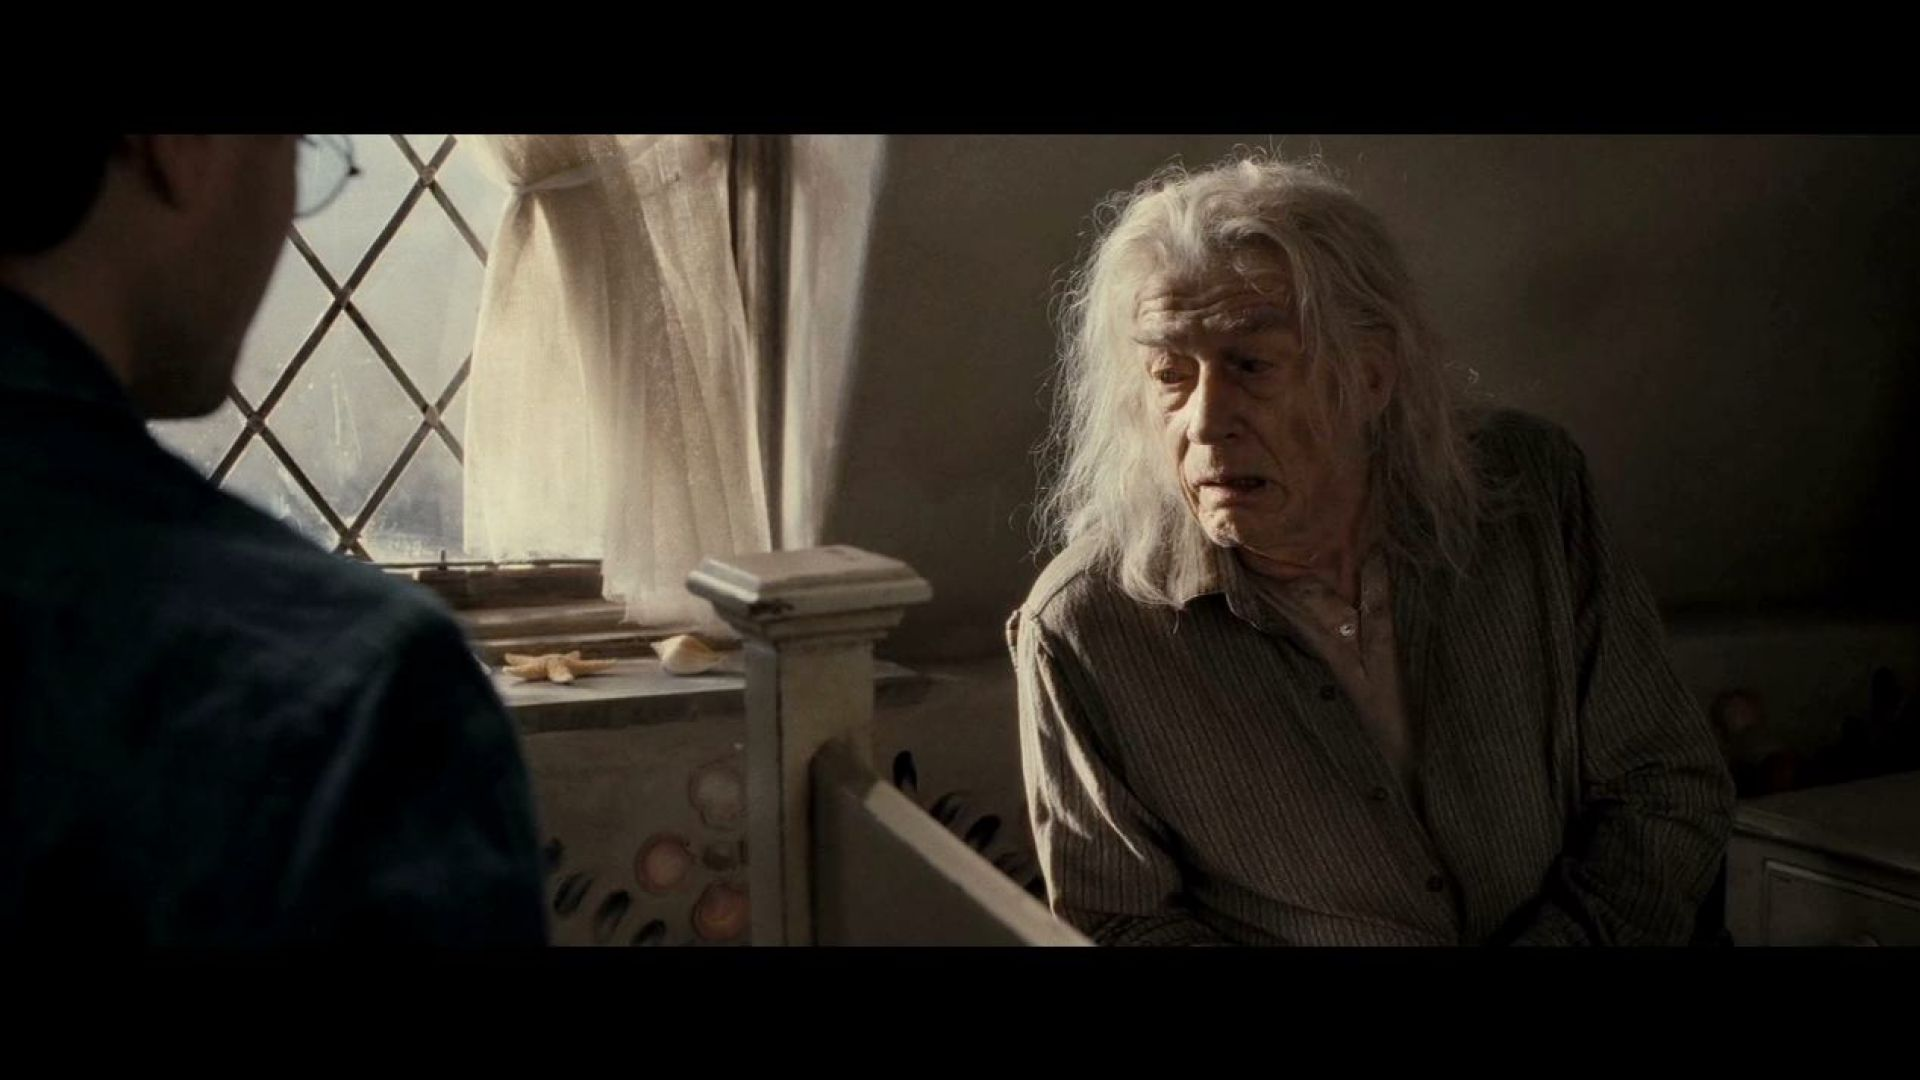 Harry and mr ollivander talk about the deathly hallows for Harry elder